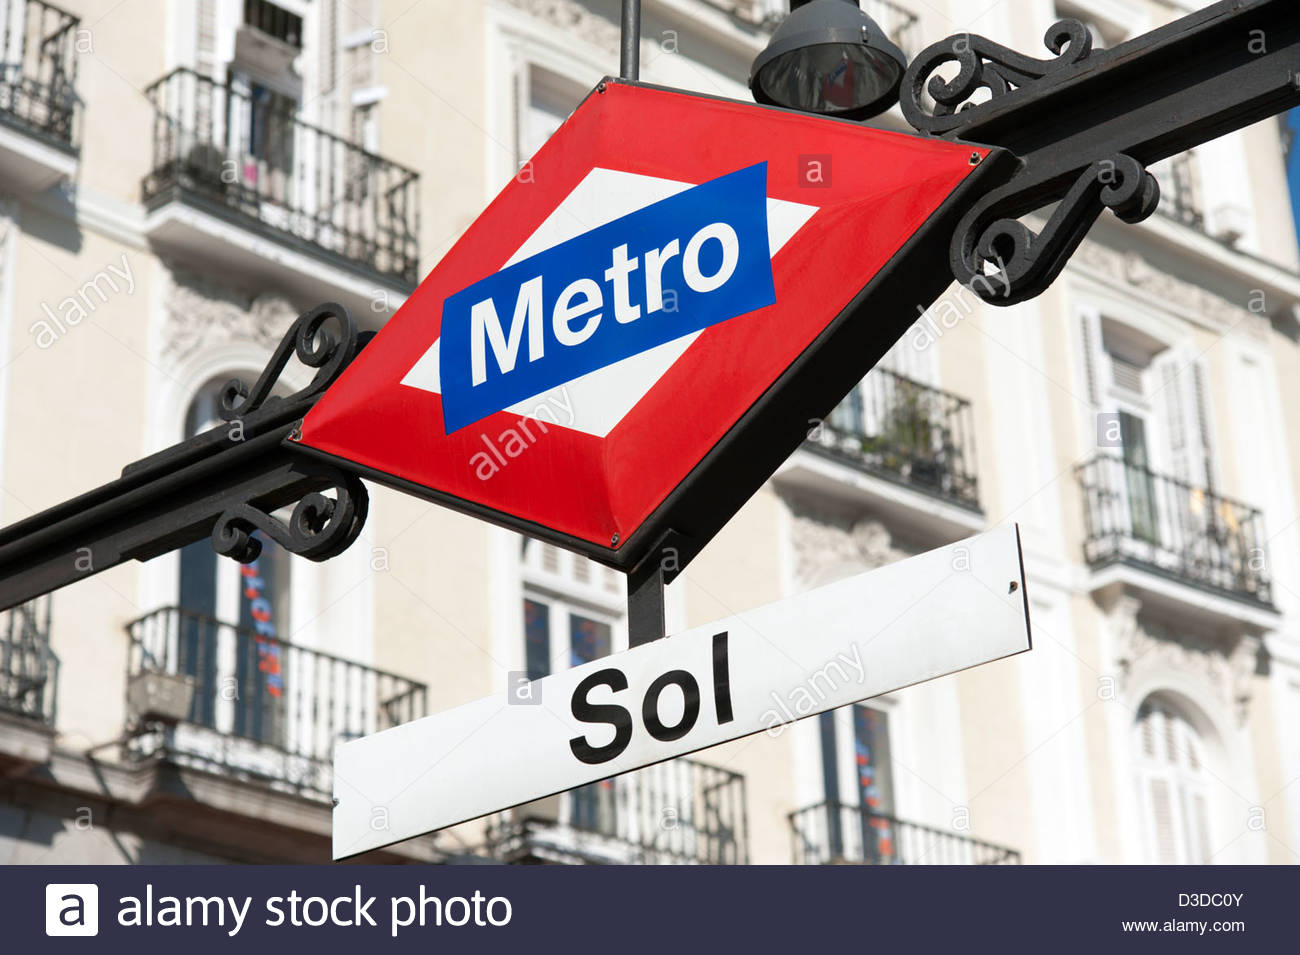 Sol metro station sign, Madrid, Spain - Stock Image